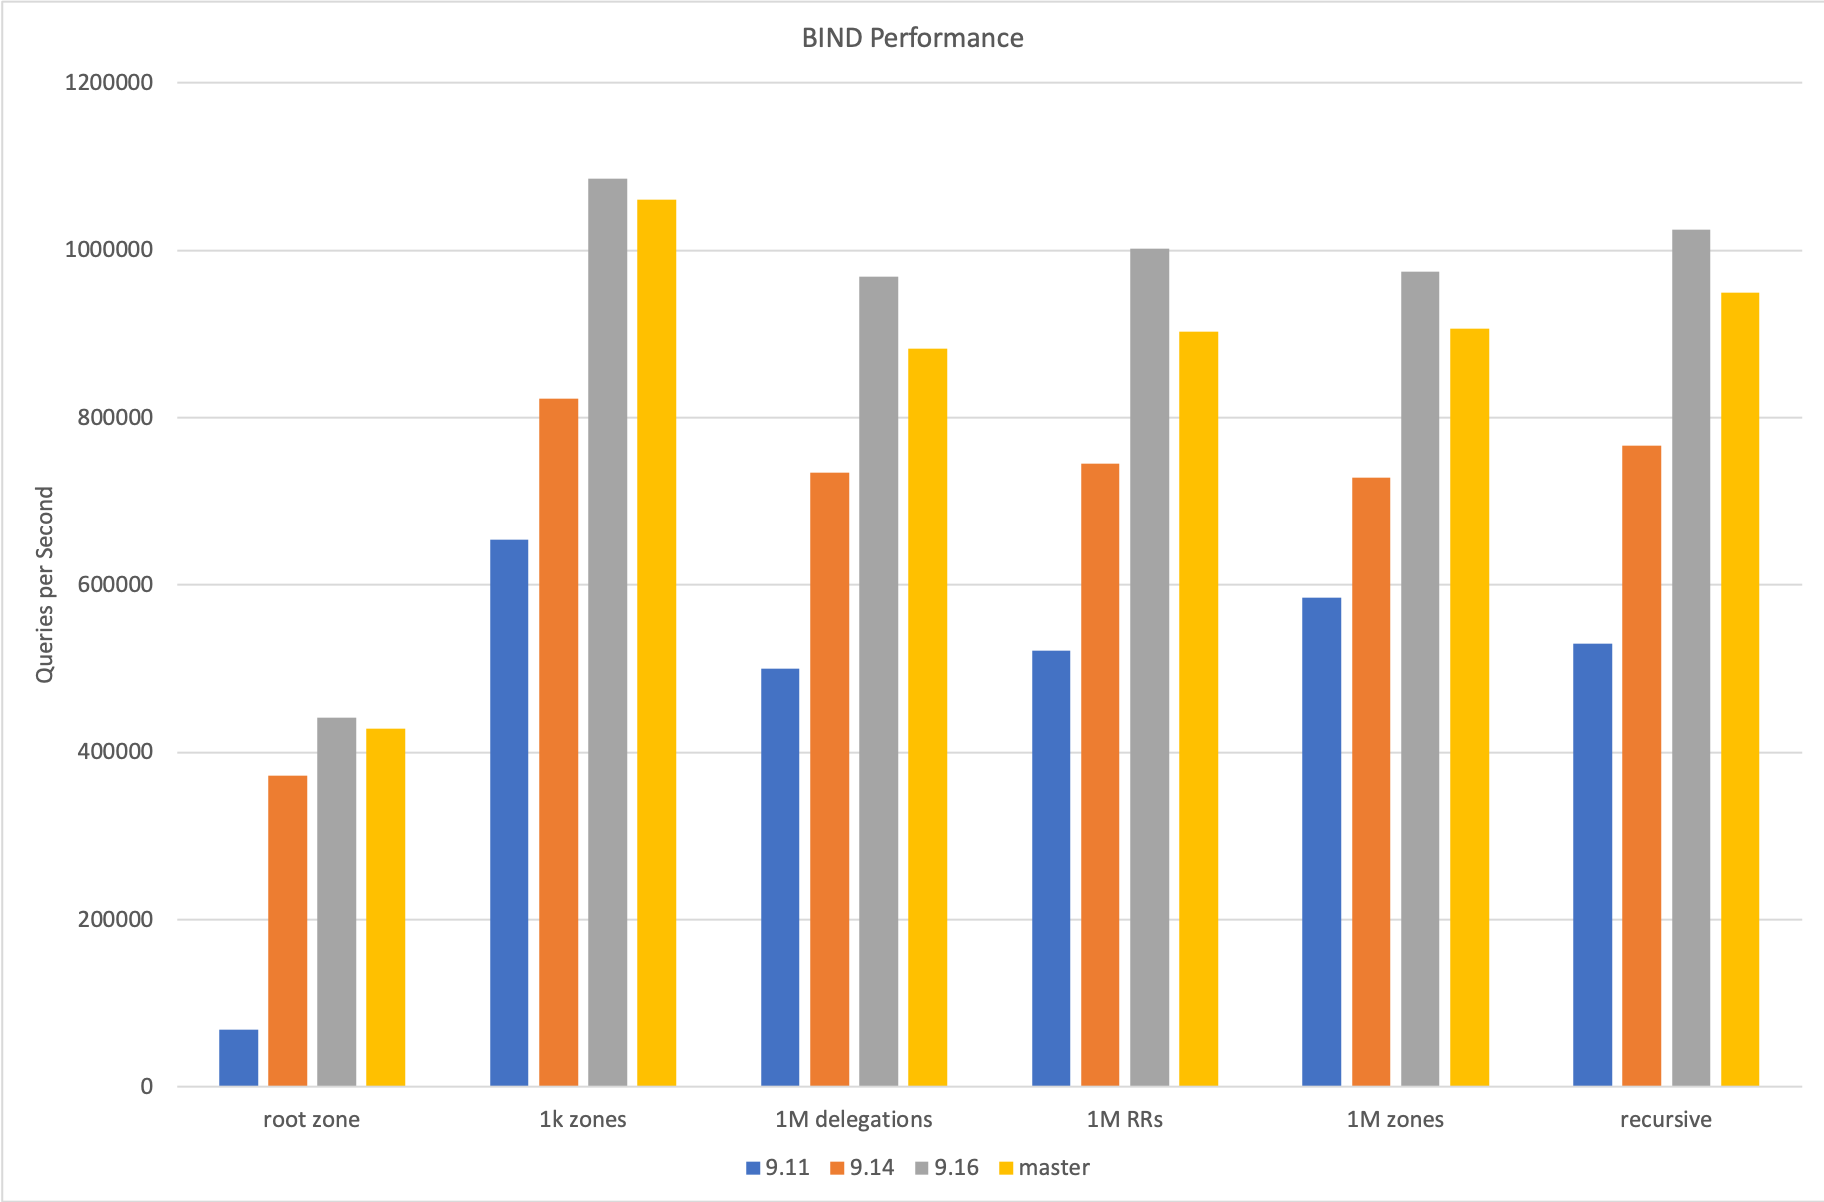 Bar chart comparing performance of different BIND 9 versions